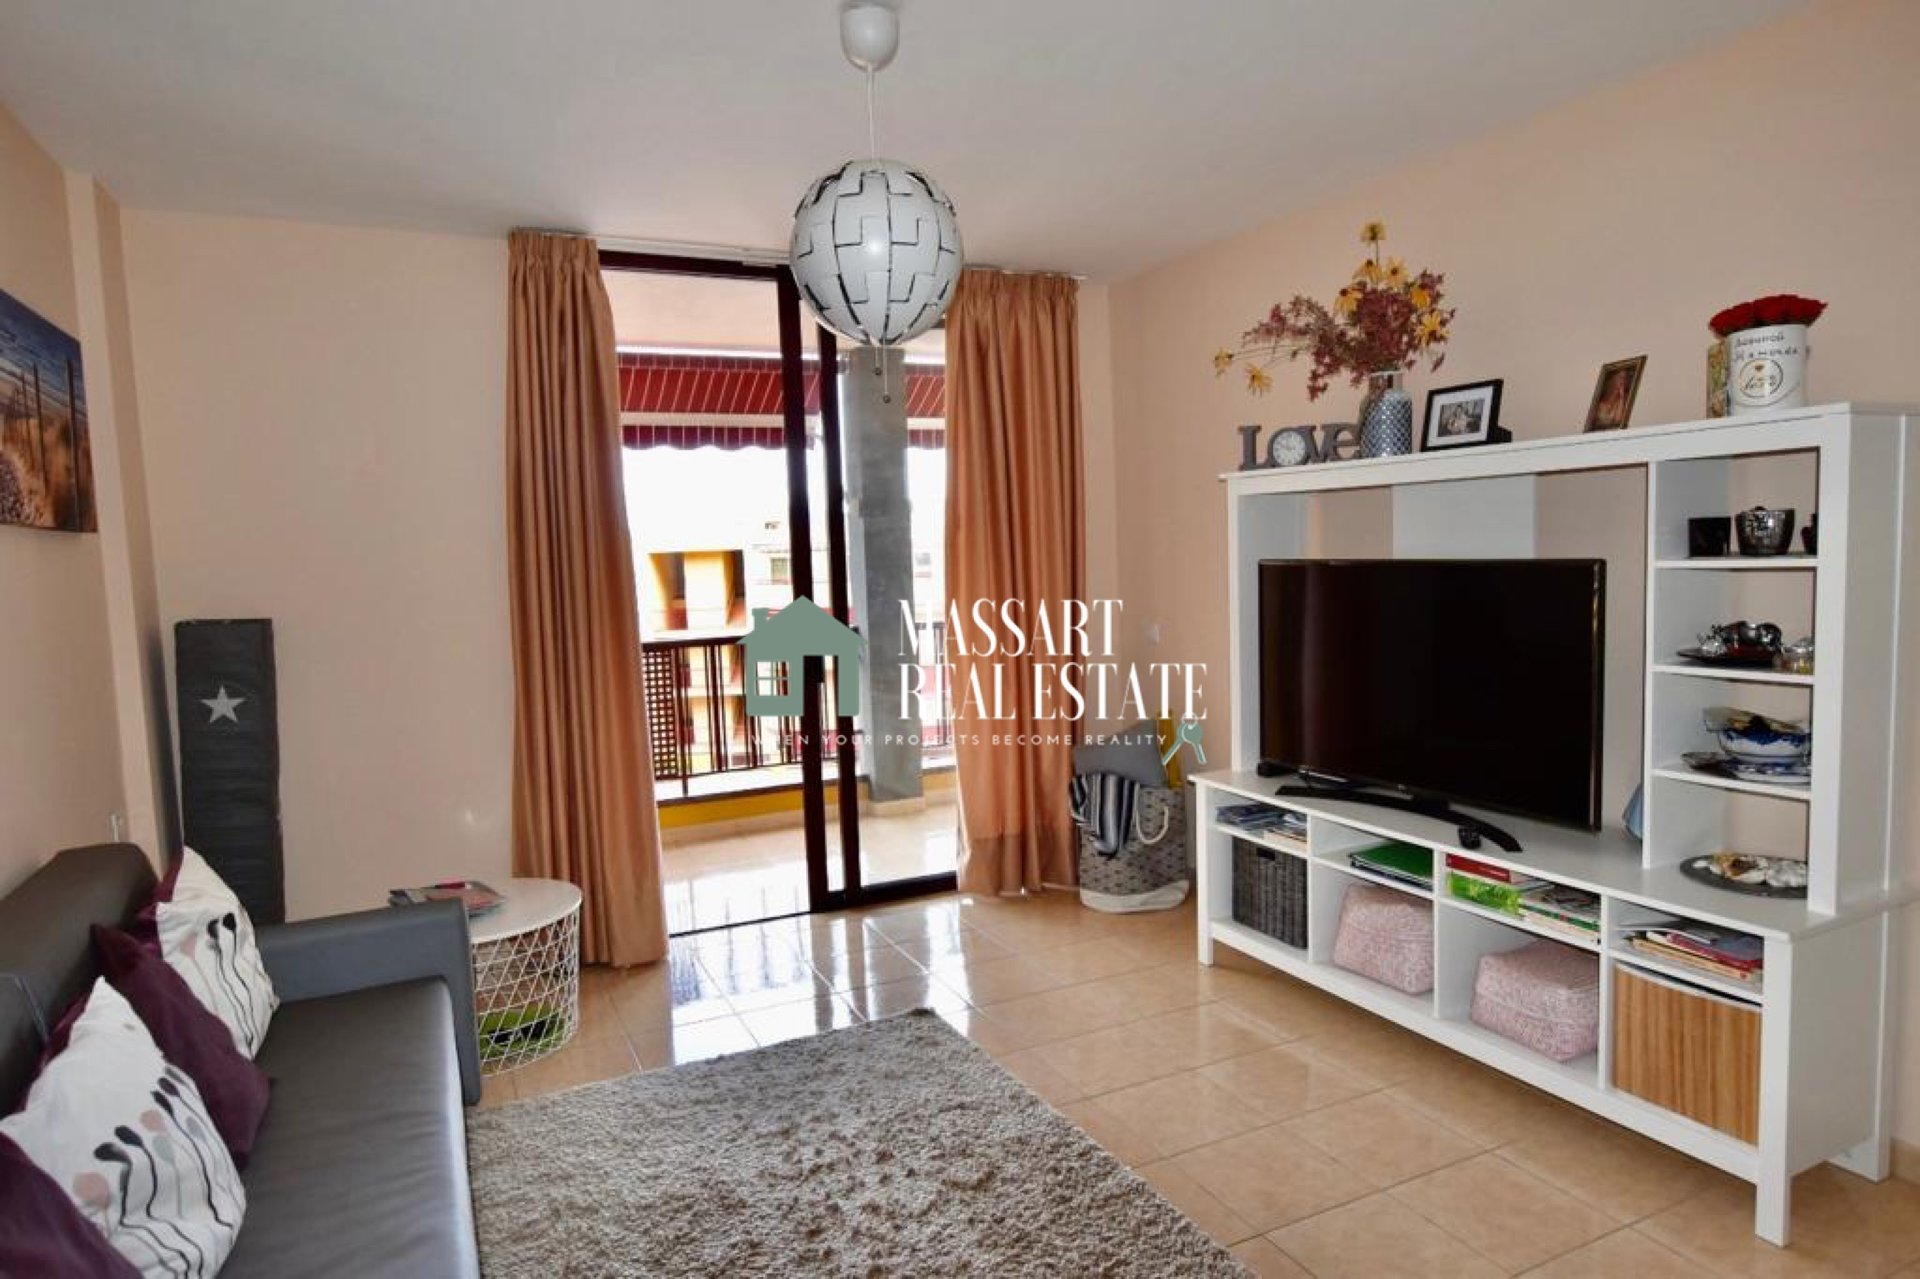 For sale in Puerto De Santiago, 65 m2 furnished apartment ideal both as a second residence, as an investment or even as a habitual residence.